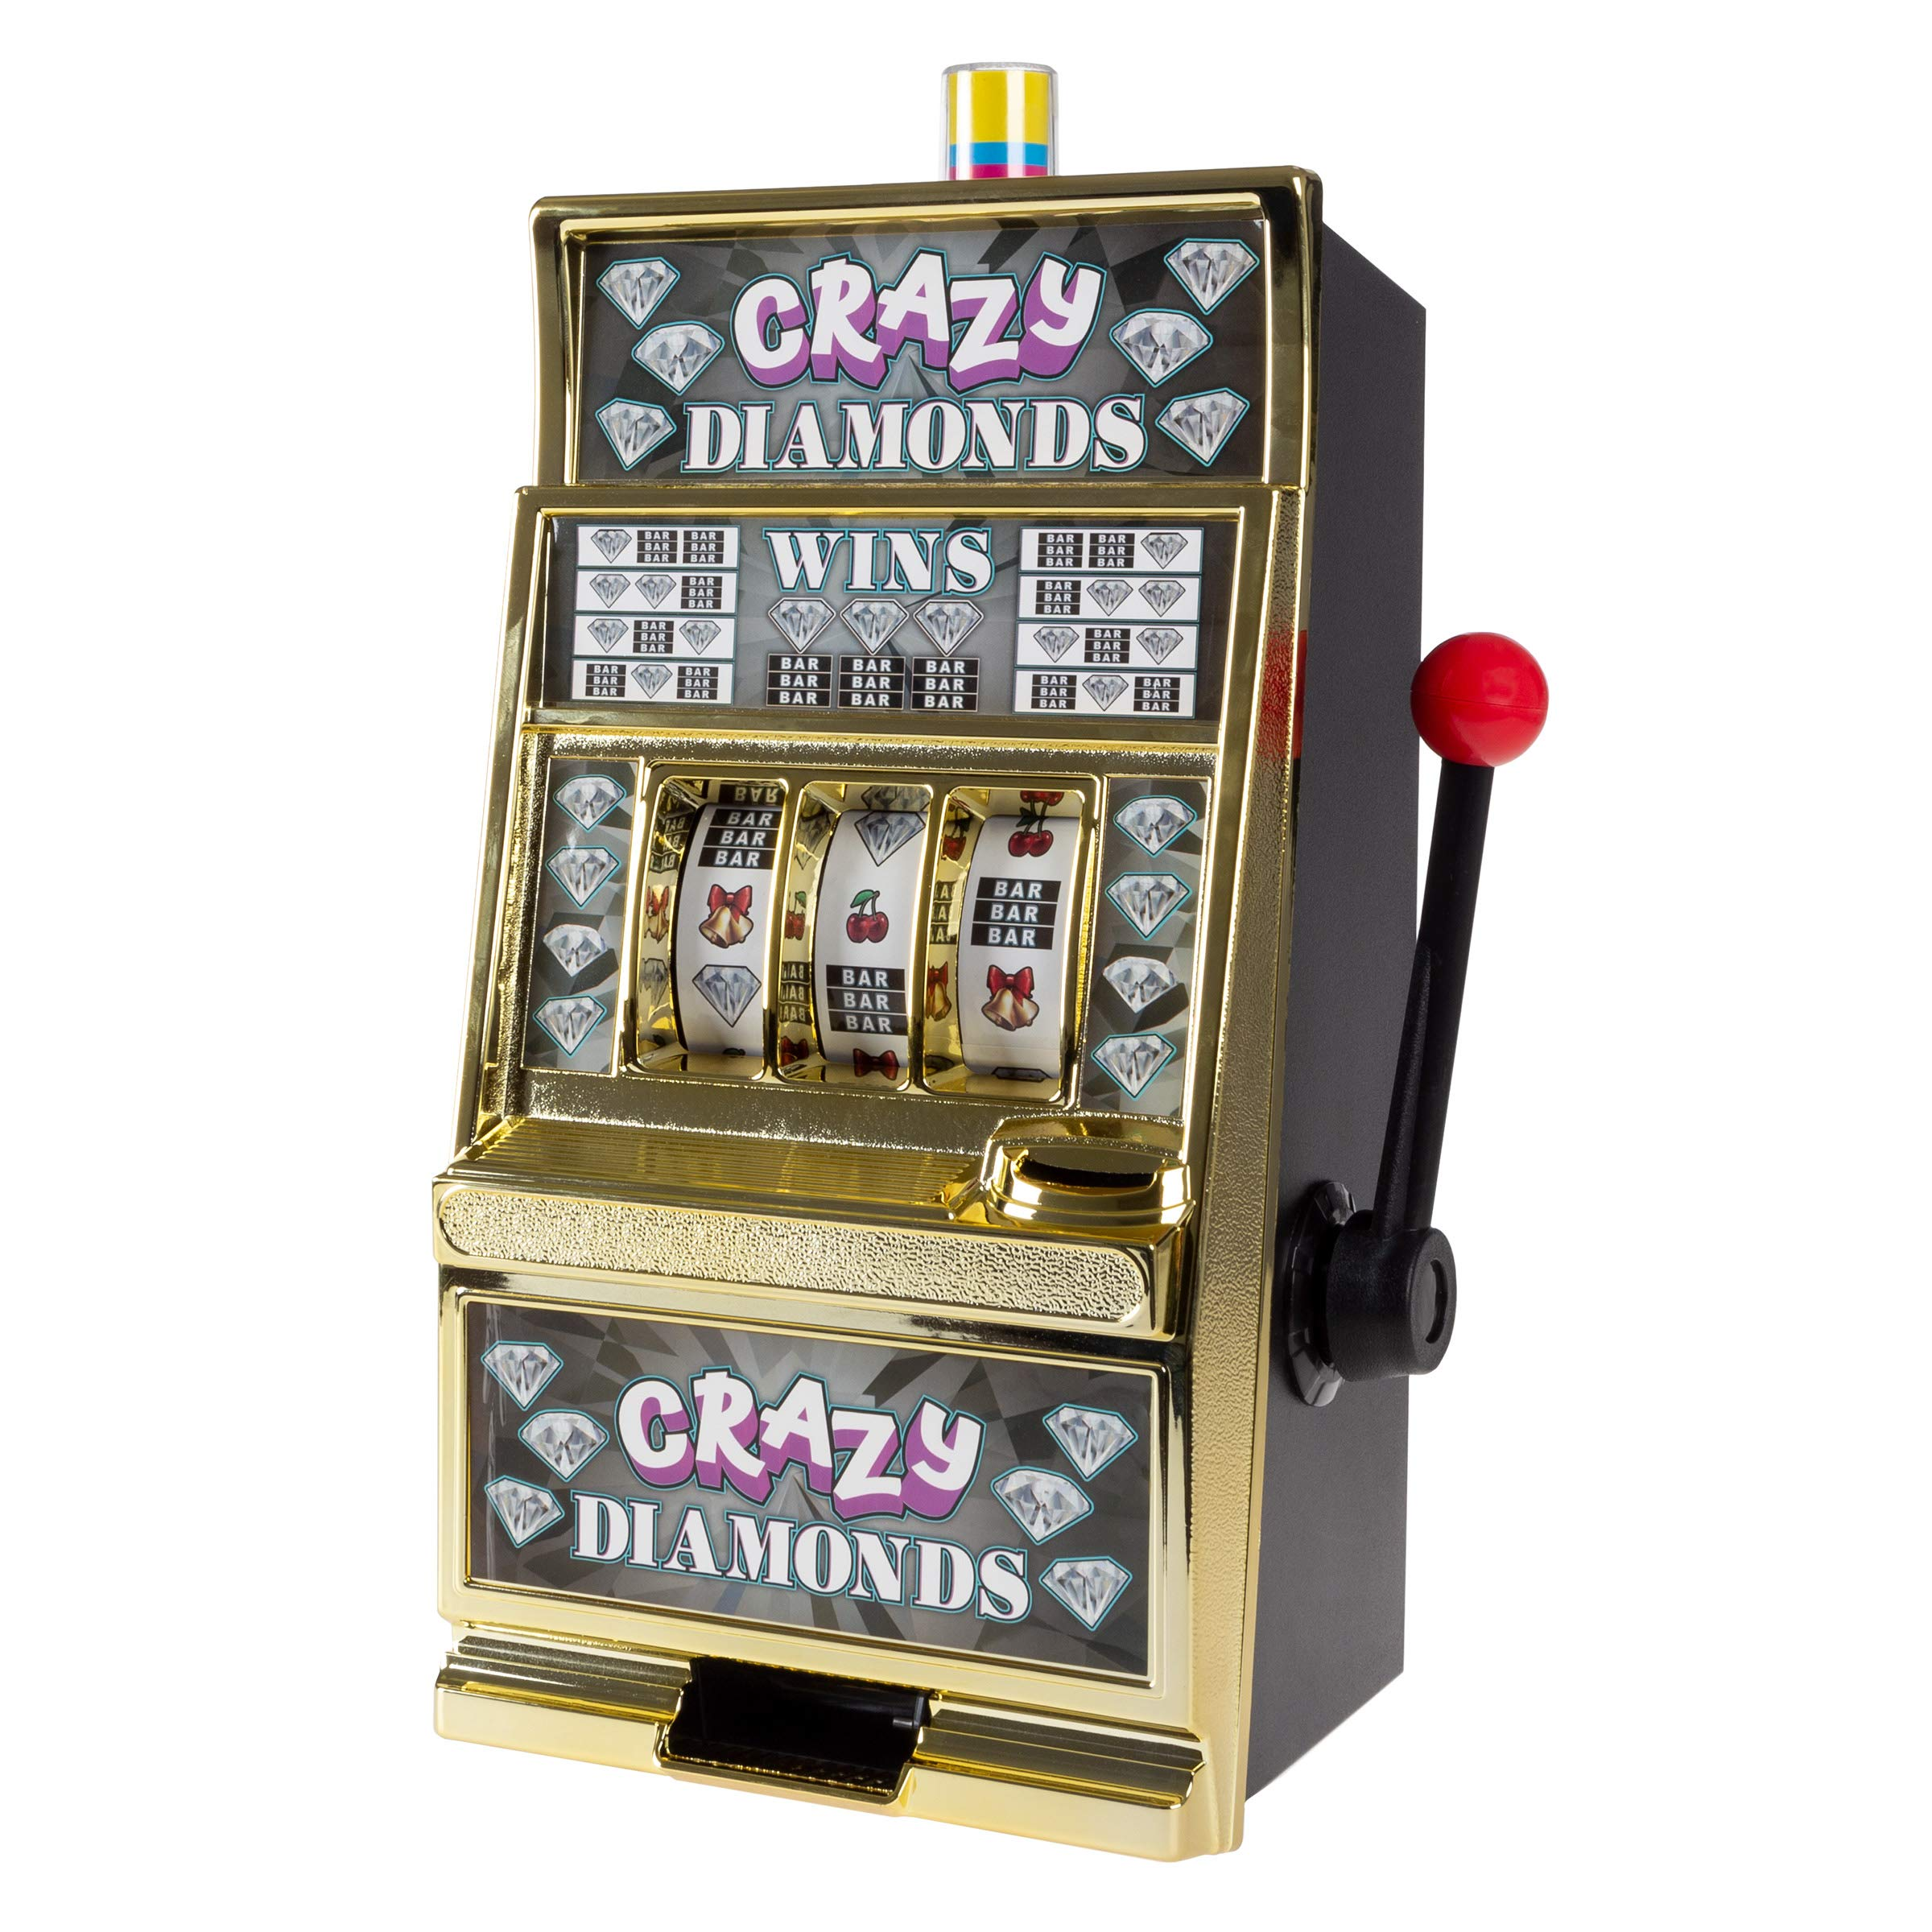 Replica Crazy Diamonds Table Top Slot Machine Bank - 15 Inches Tall! by TMG